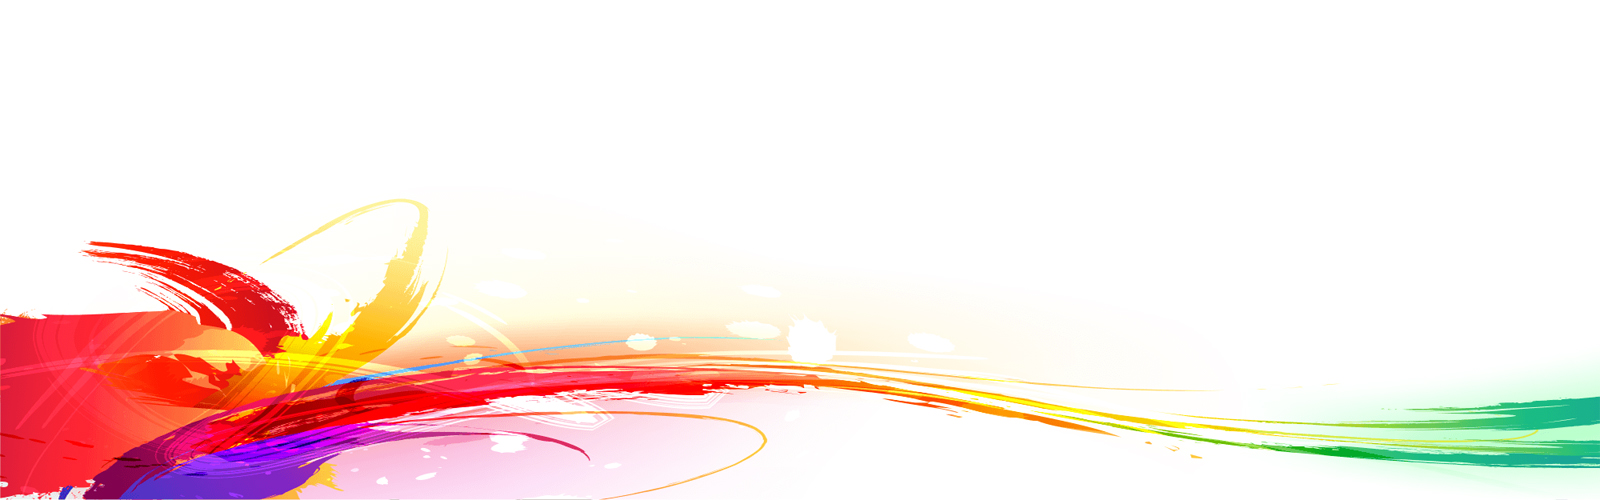 background banner design png 7 cdi computer dealers inc